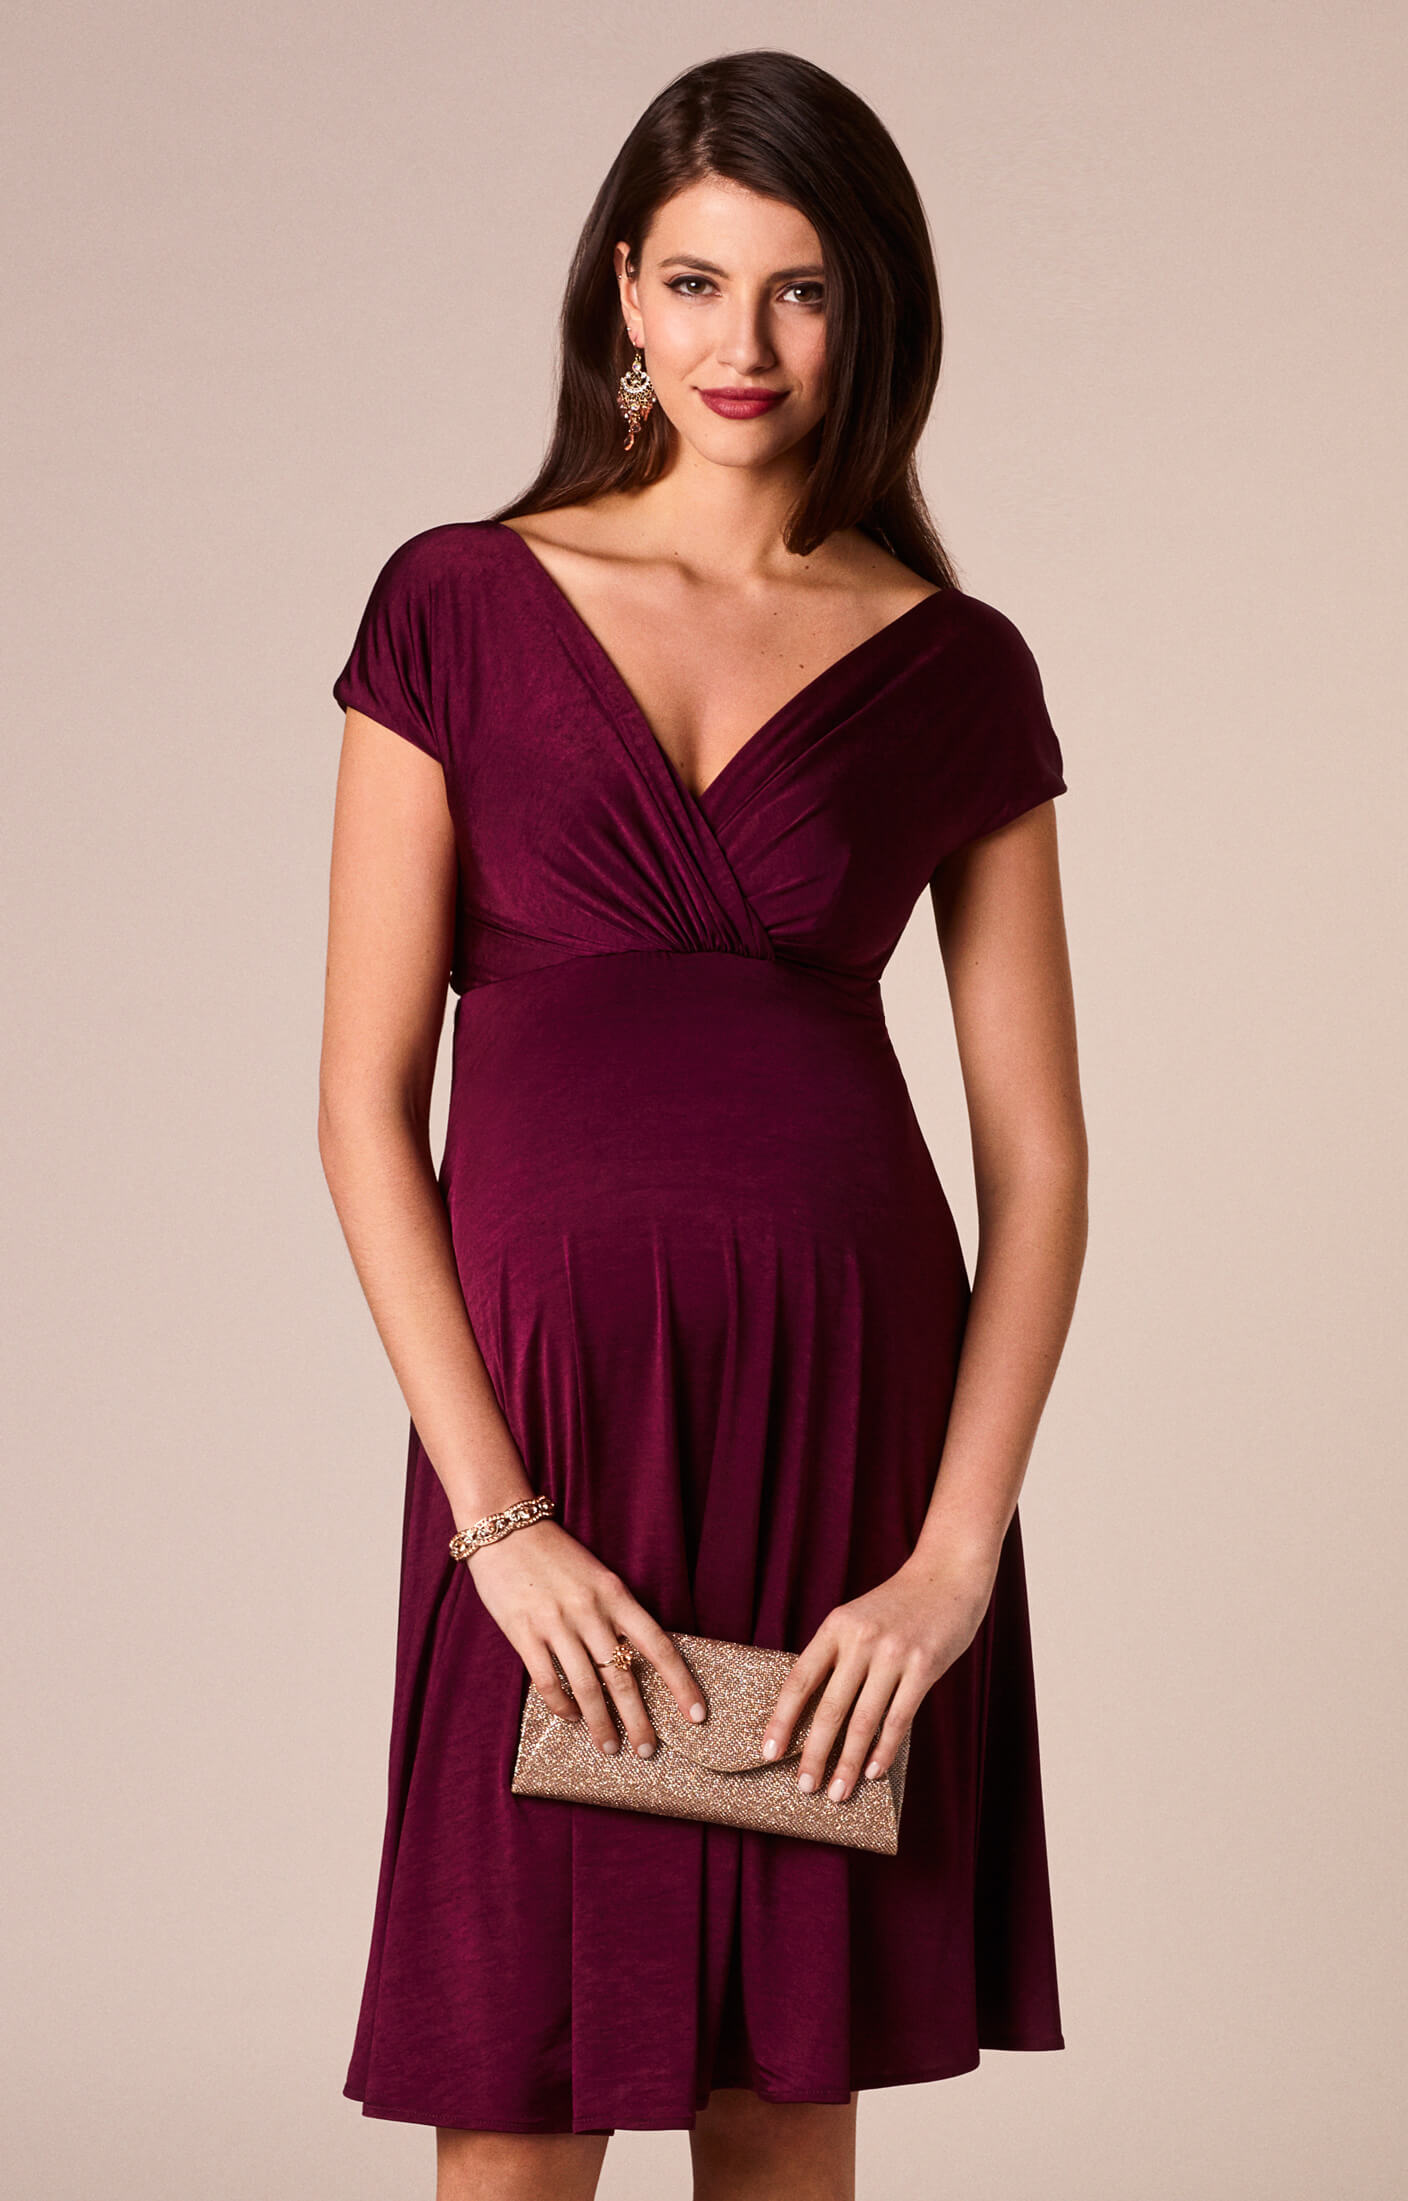 Alessandra maternity dress short berry maternity wedding dresses alessandra maternity dress short berry by tiffany rose ombrellifo Gallery